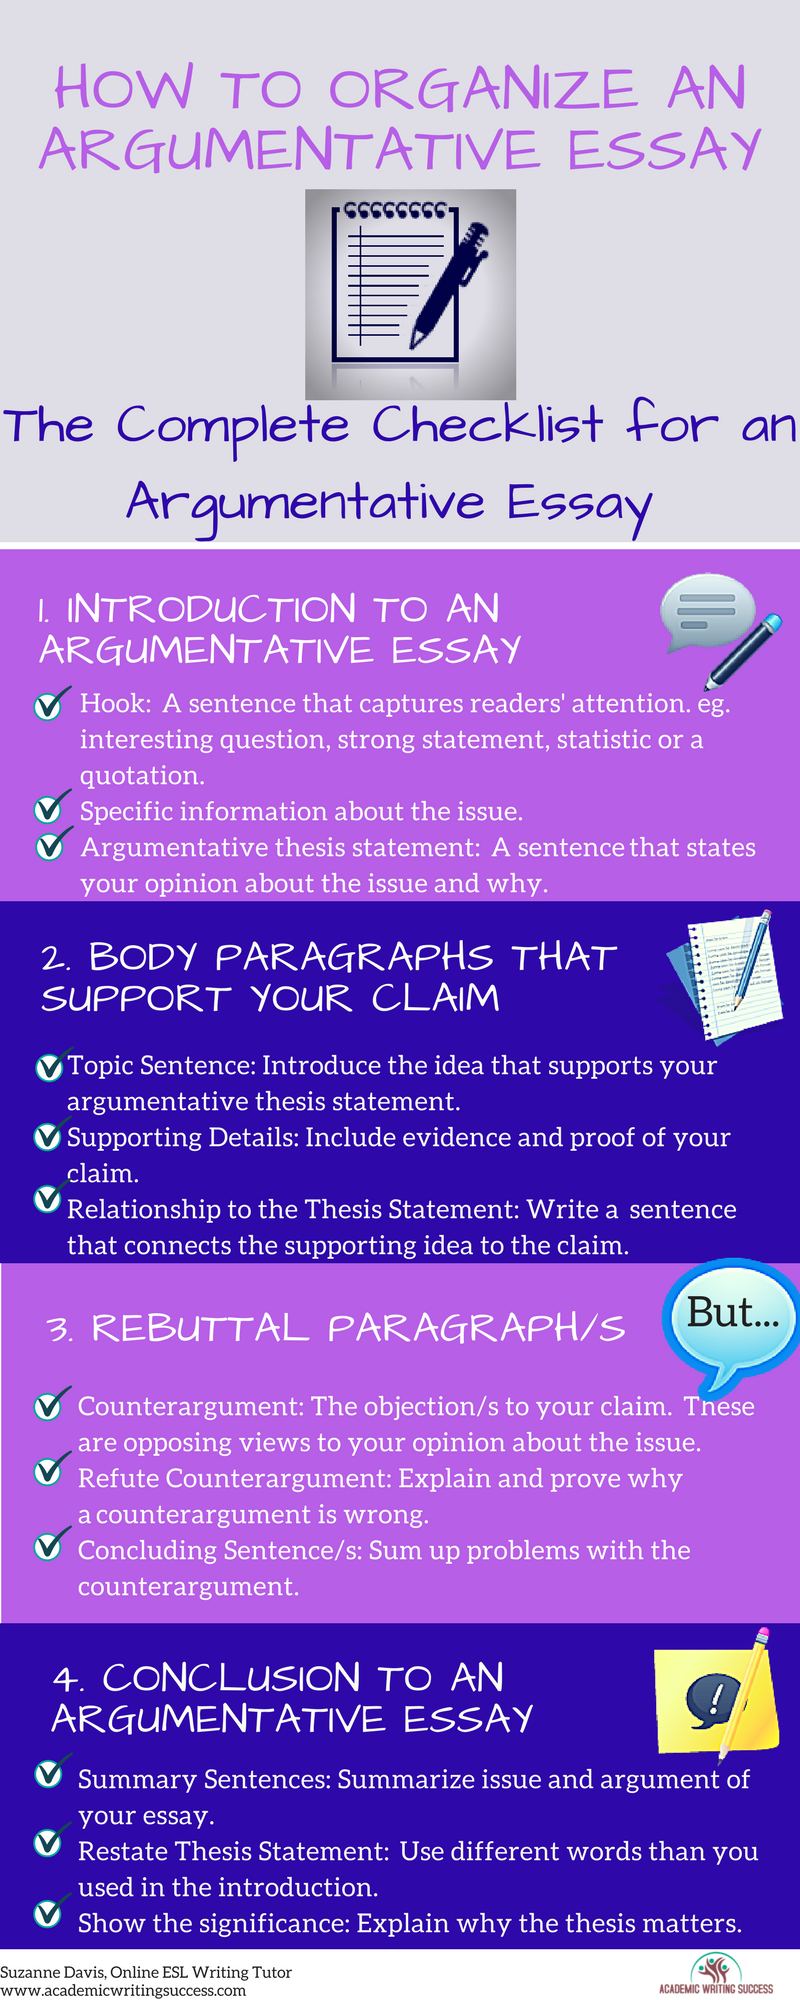 Research Paper Samples Essay  Short Essays For High School Students also Health Essay Sample The Ultimate Guide On How To Organize A Bold Argumentative  The Yellow Wallpaper Character Analysis Essay